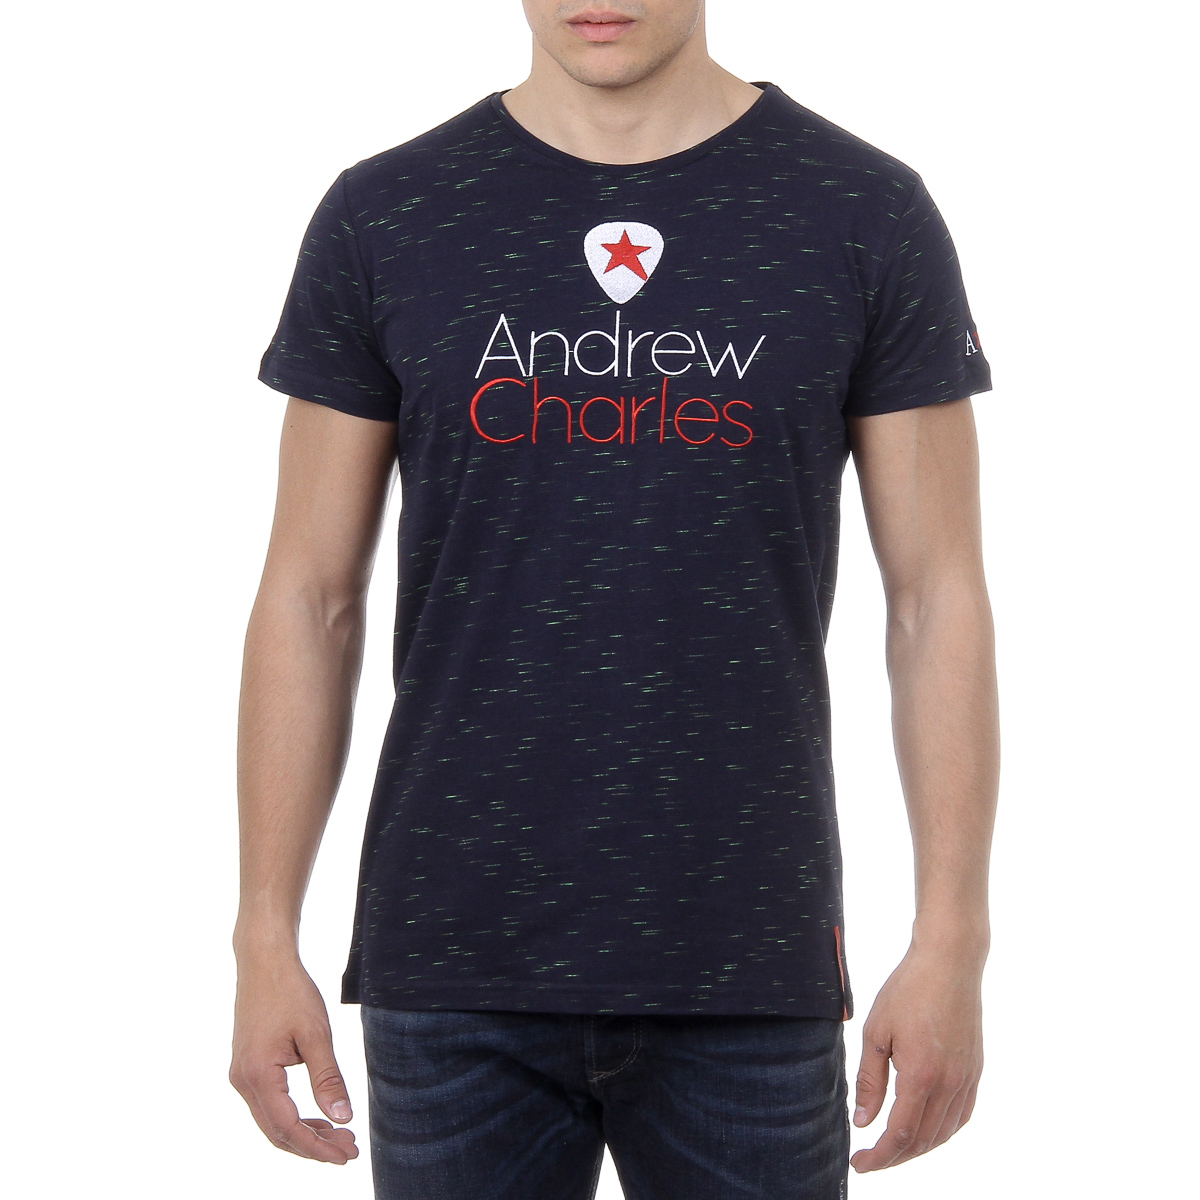 Primary image for Andrew Charles Mens T-Shirt Short Sleeves Round Neck Dark Blue JACK